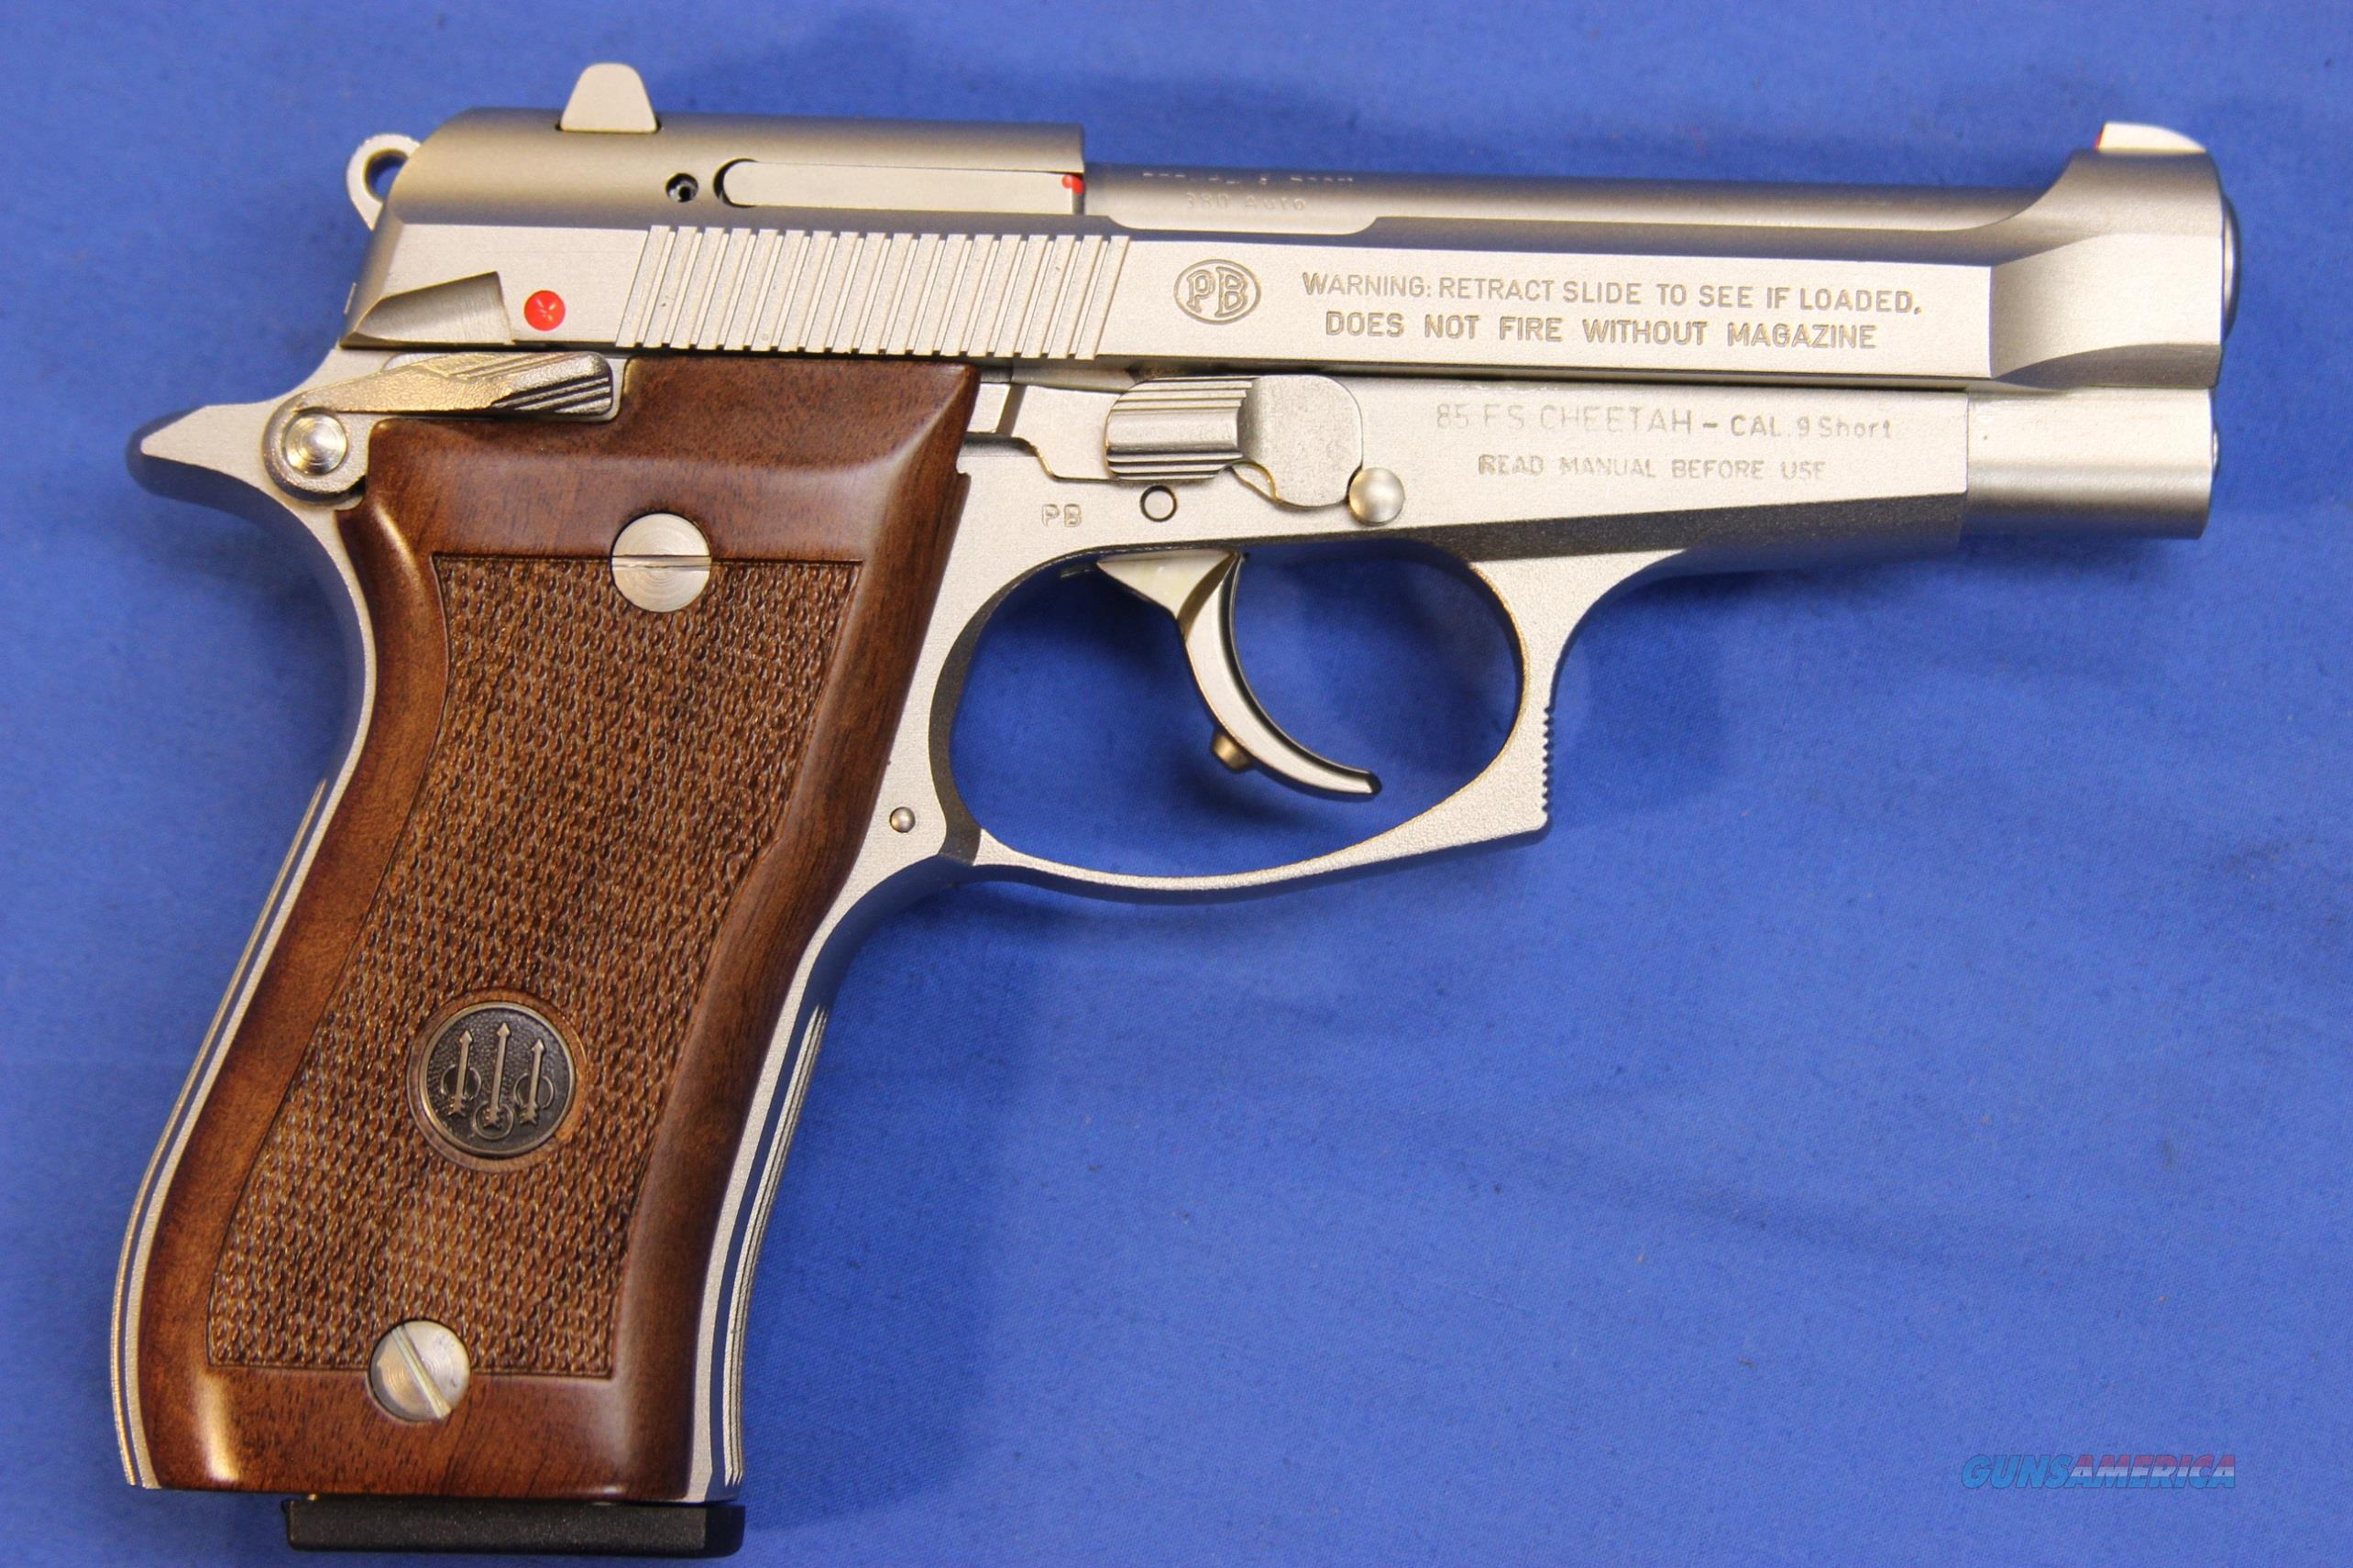 BERETTA 85 FS CHEETAH NICKEL .380 ACP - NEW!  Guns > Pistols > Beretta Pistols > Cheetah Series > Model 85